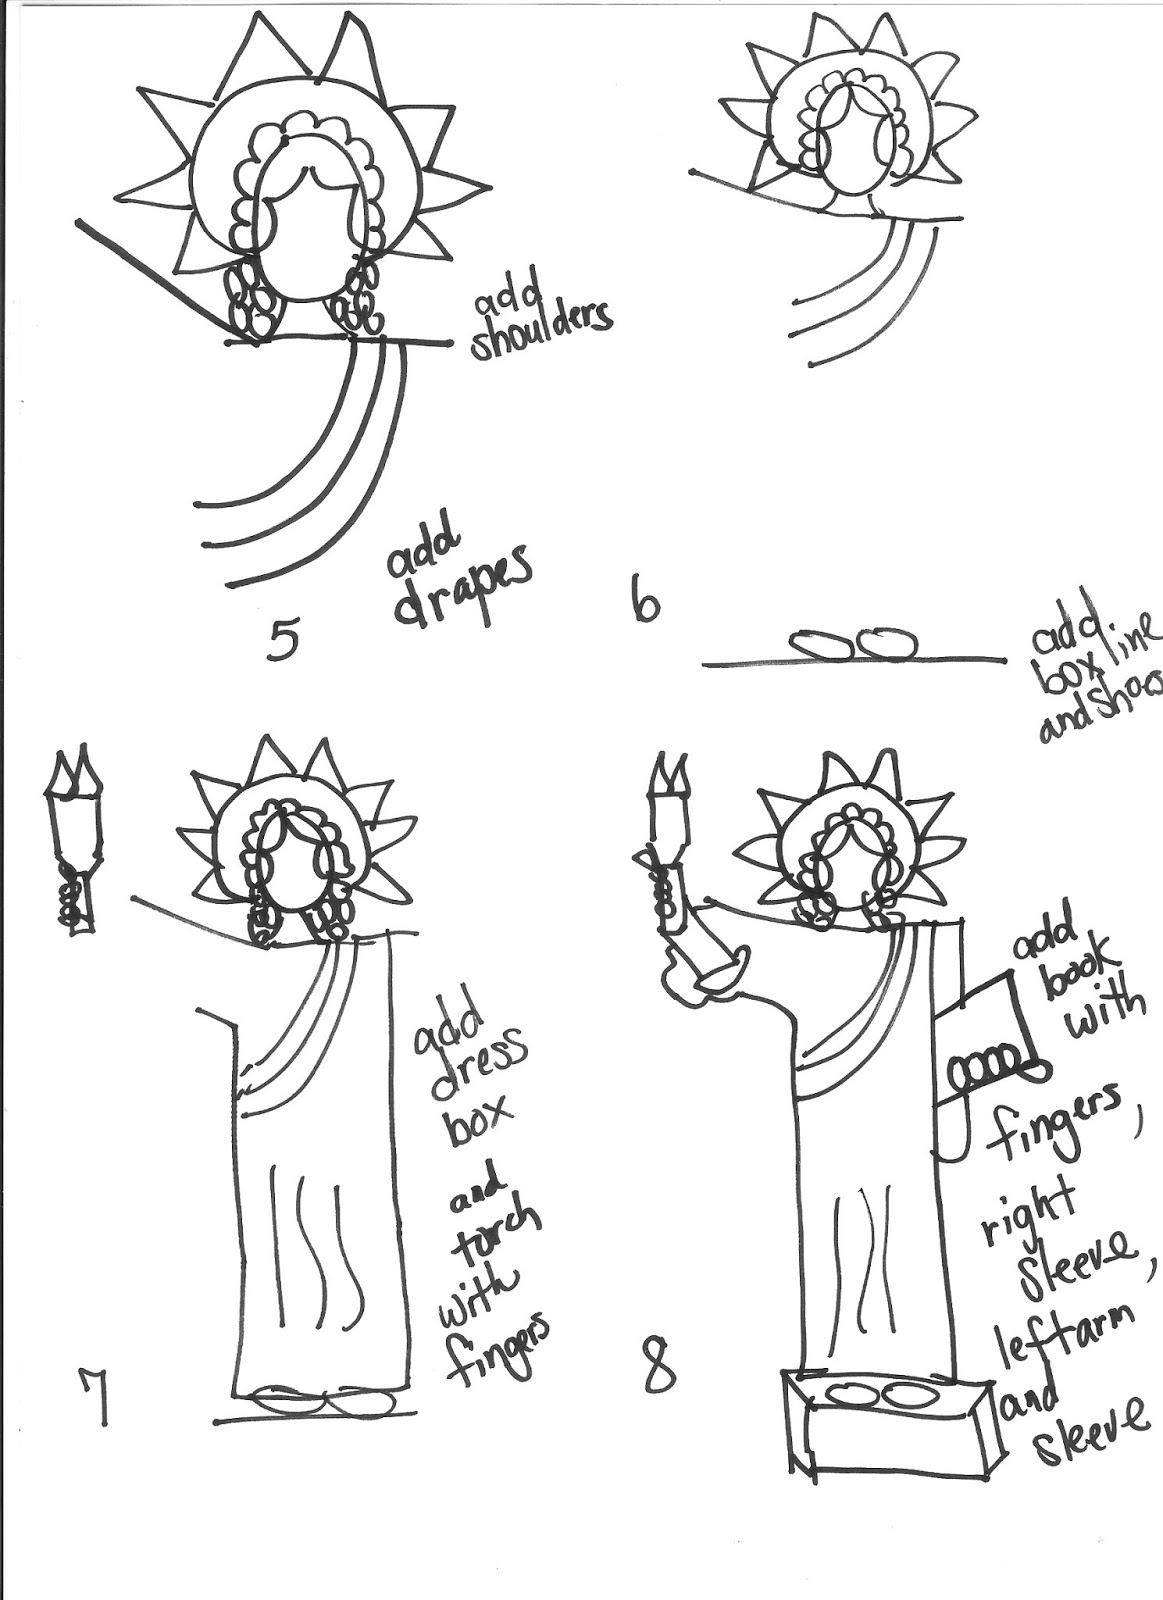 statue of liberty drawing step for step how to draw statue of liberty step by step drawingforallnet statue step drawing liberty step of for